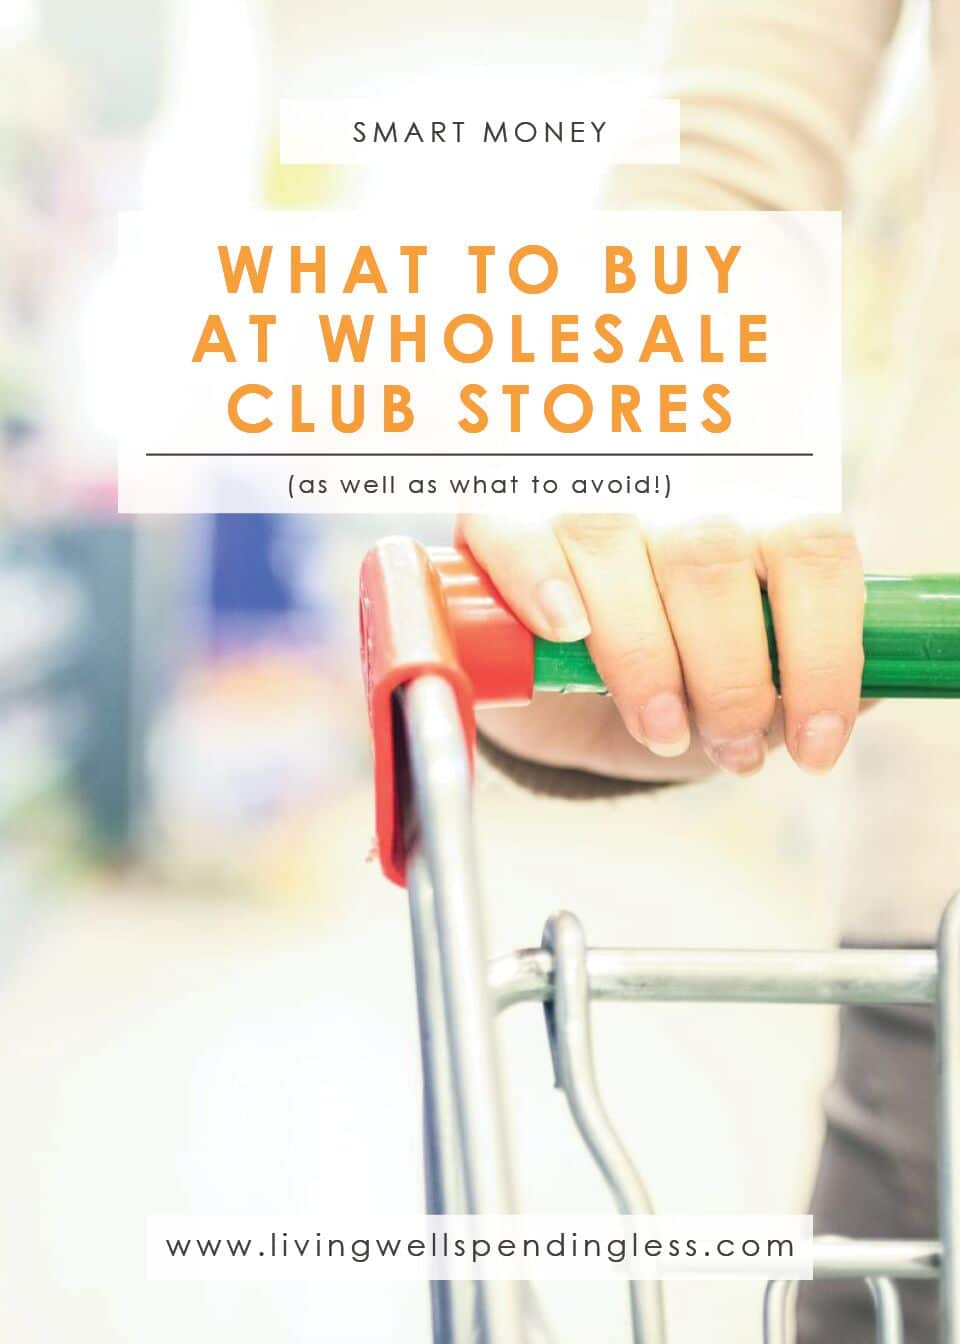 What to buy at wholesale club stores (as well as what to avoid).